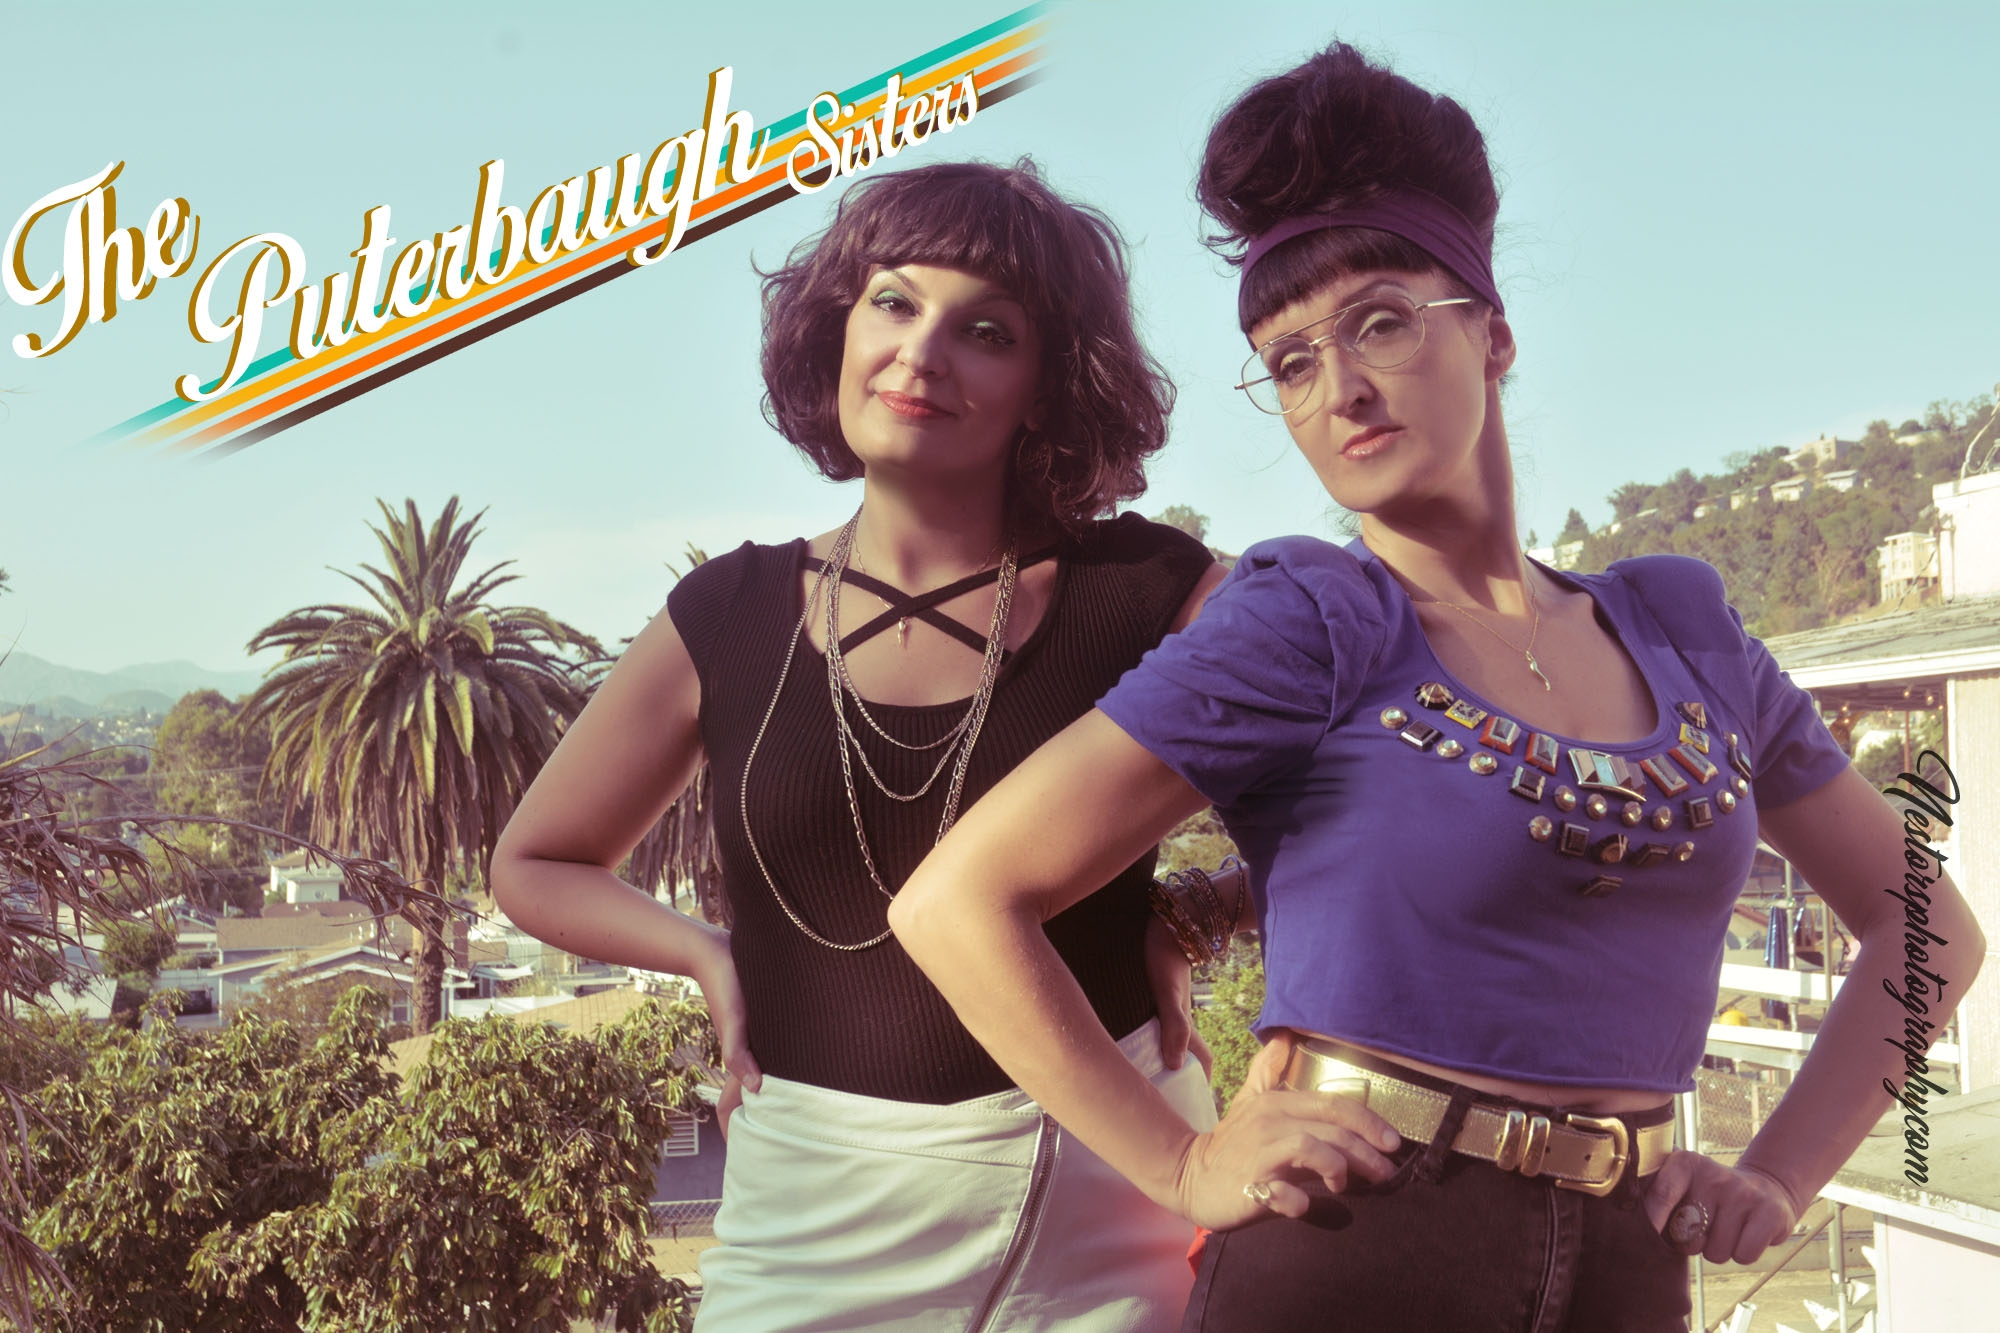 """The Puterbaugh Sisters, Tiffany and Danielle Puterbaugh are the first alternative sister duo act since vaudeville. Real life sisters, they're parents relationship has failed but they're act will not. Originally from Chicago and currently based in LA. """"Taking they're shtick into absurdist parallel universes...it works 100% of the time."""" - The Onion AV Club, """"Named Chicago Comics to Watch"""" -Chicago Magazine You've seen these sisters everywhere, featuring at CVS and headlining Walgreens. They've opened for Kyle Kinane, Bridgette Everett and Beth Stelling. They've also performed at TBS Just For Laughs Festival, Riot LA, """"Best Bars in America"""" (Esquire), Benzen Ball Comedy Festival (DC), High Plaines (Tru TV), All Jane (Portland) and Chicago/NY/San Fran Sketchfest. They produce a critically acclaimed show """"Entertaining Julia"""" now in its 10th year. It's like watching Sister Act 2, when everyone comes out and raps about God."""